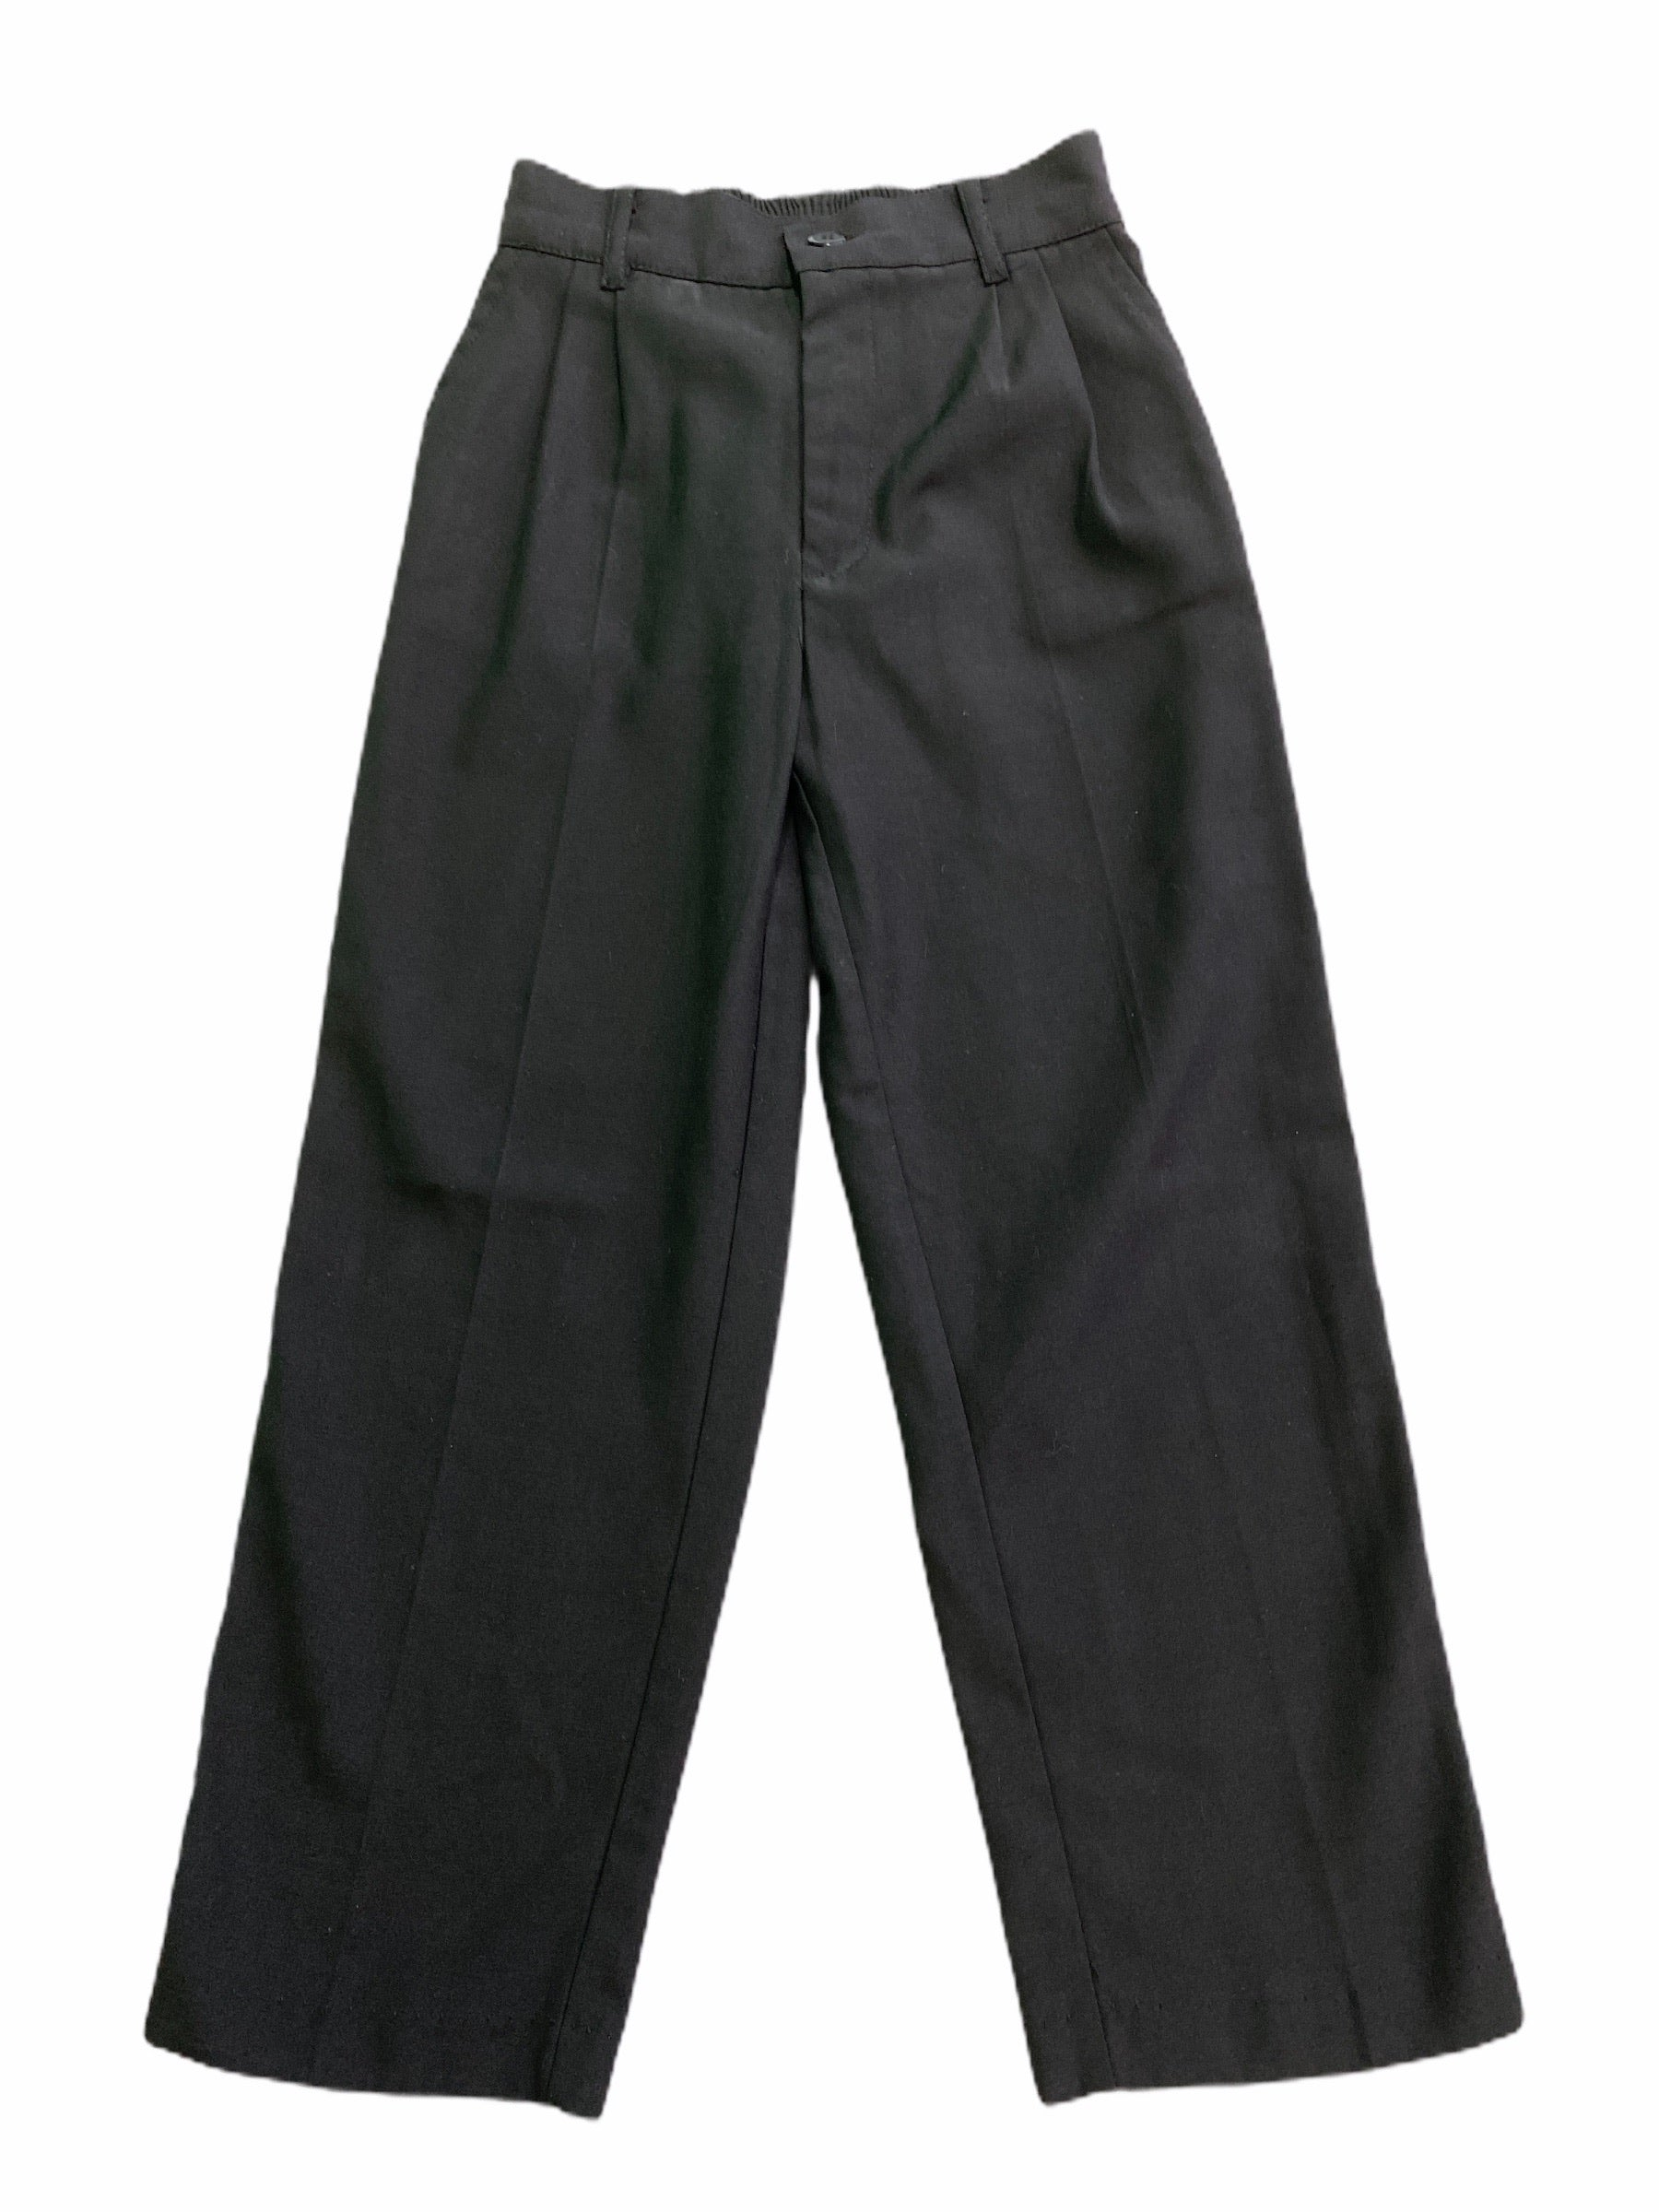 Black Slacks (5 Boys)